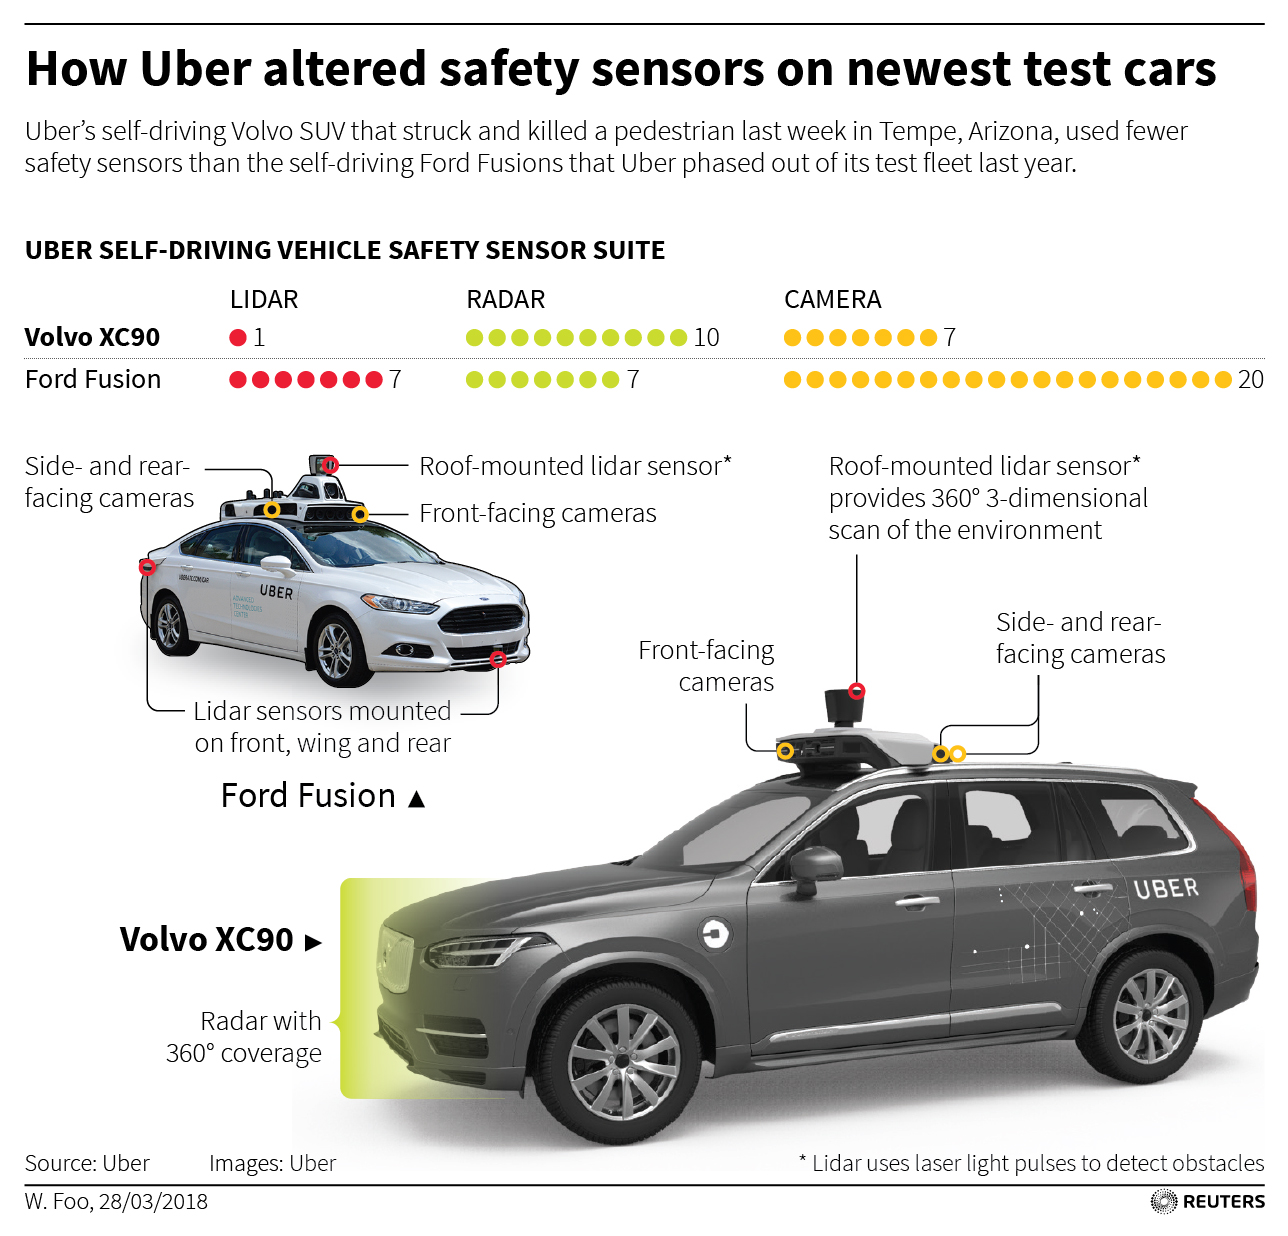 Uber's use of fewer safety sensors prompts questions after Arizona